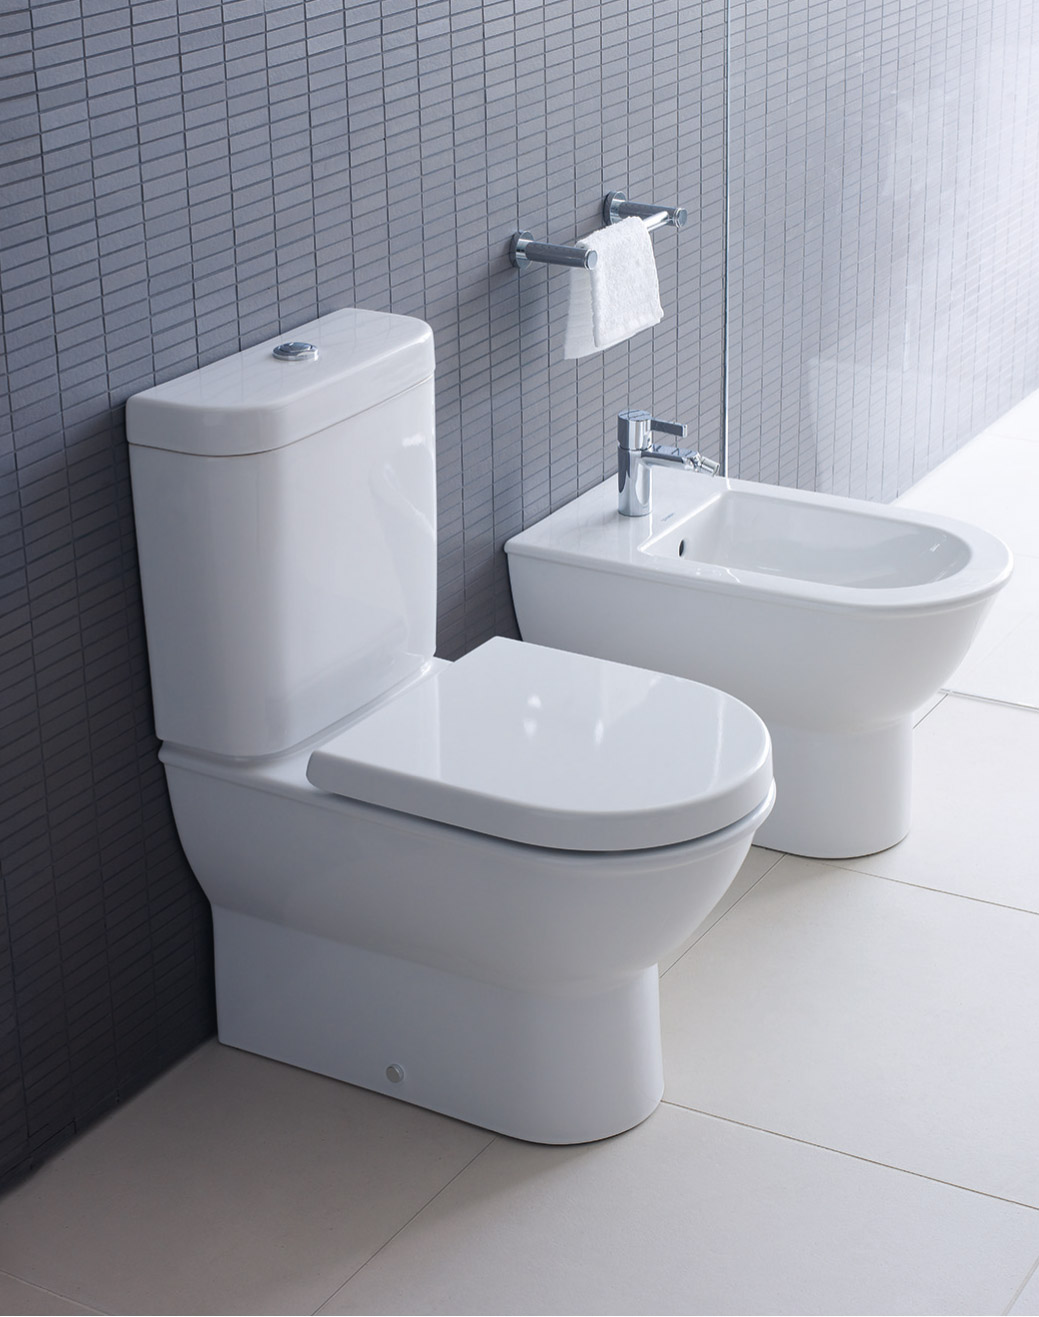 darling new stand bidet 225110 duravit. Black Bedroom Furniture Sets. Home Design Ideas